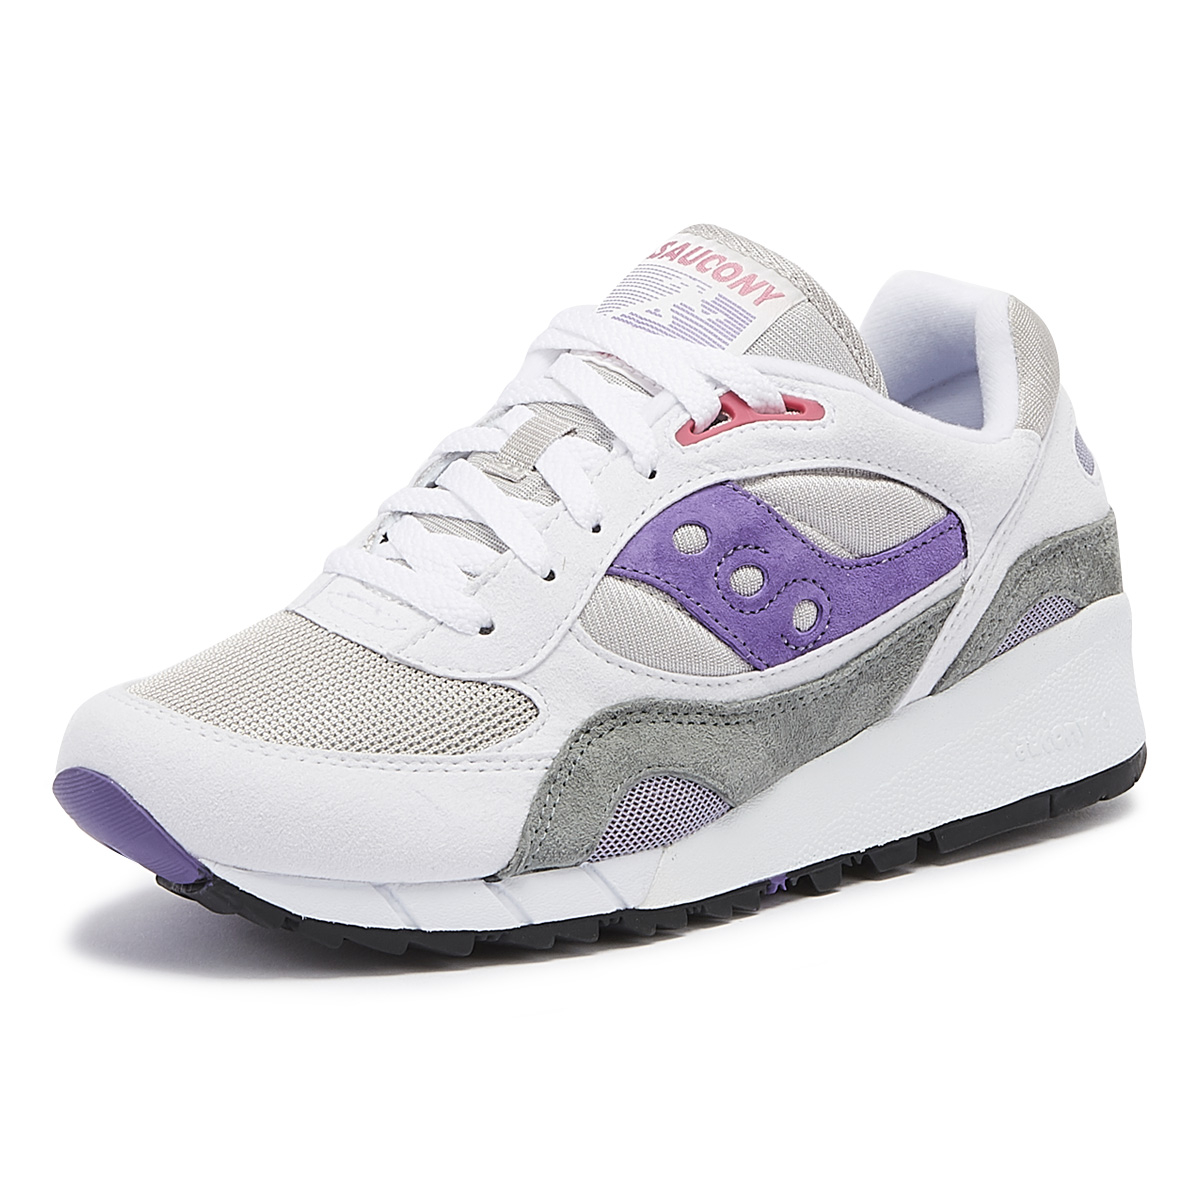 timeless design 3130b 44487 Details about Saucony Shadow 6000 White & Grey & Purple Trainers Lace Up  Sport Casual Shoes